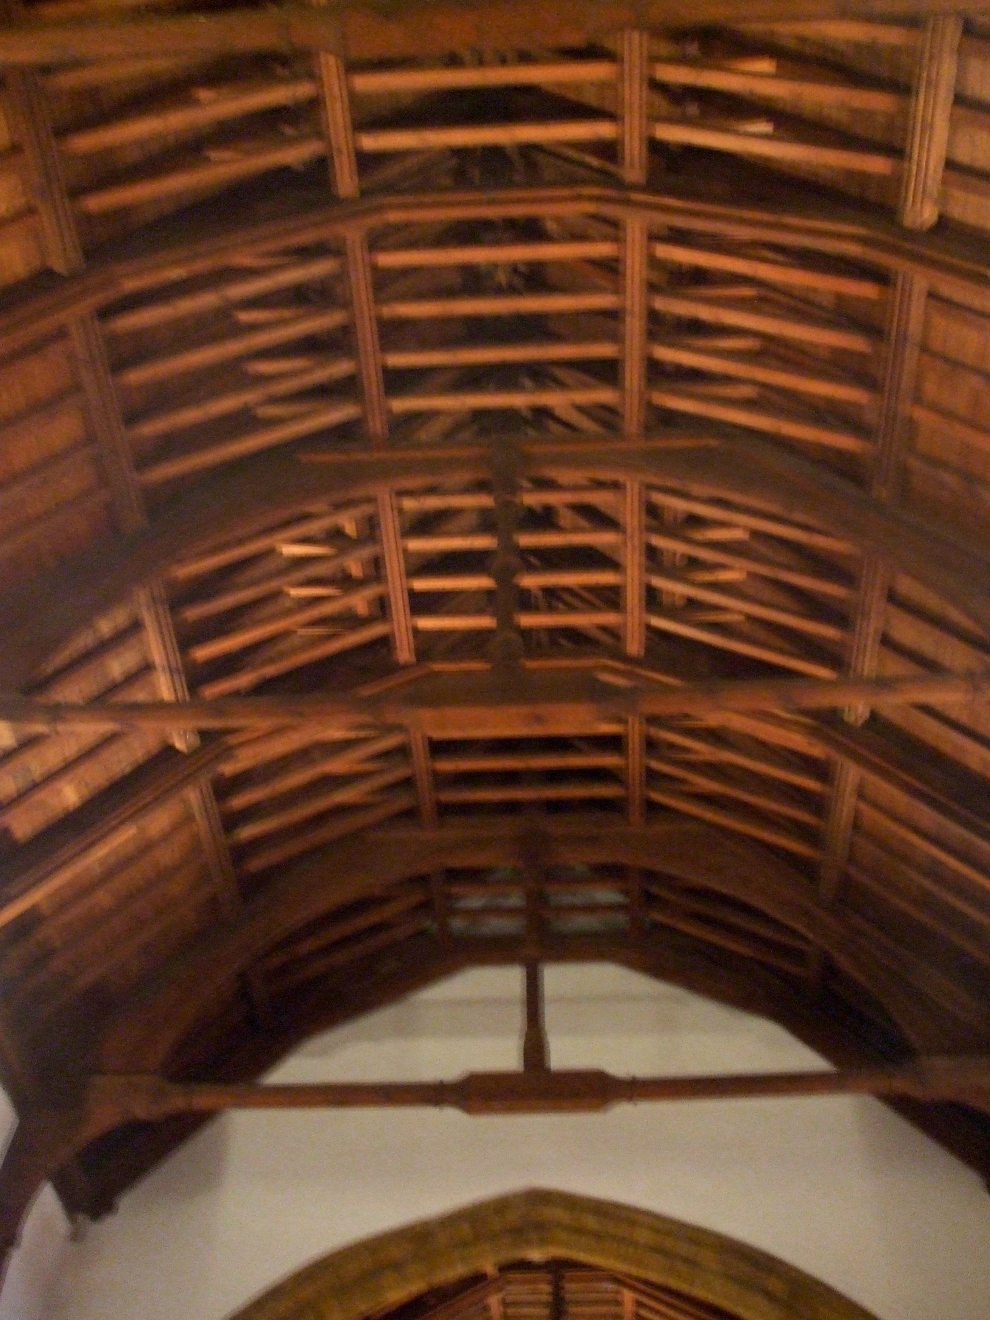 Roof timbers above the nave of All Saints Brixworth